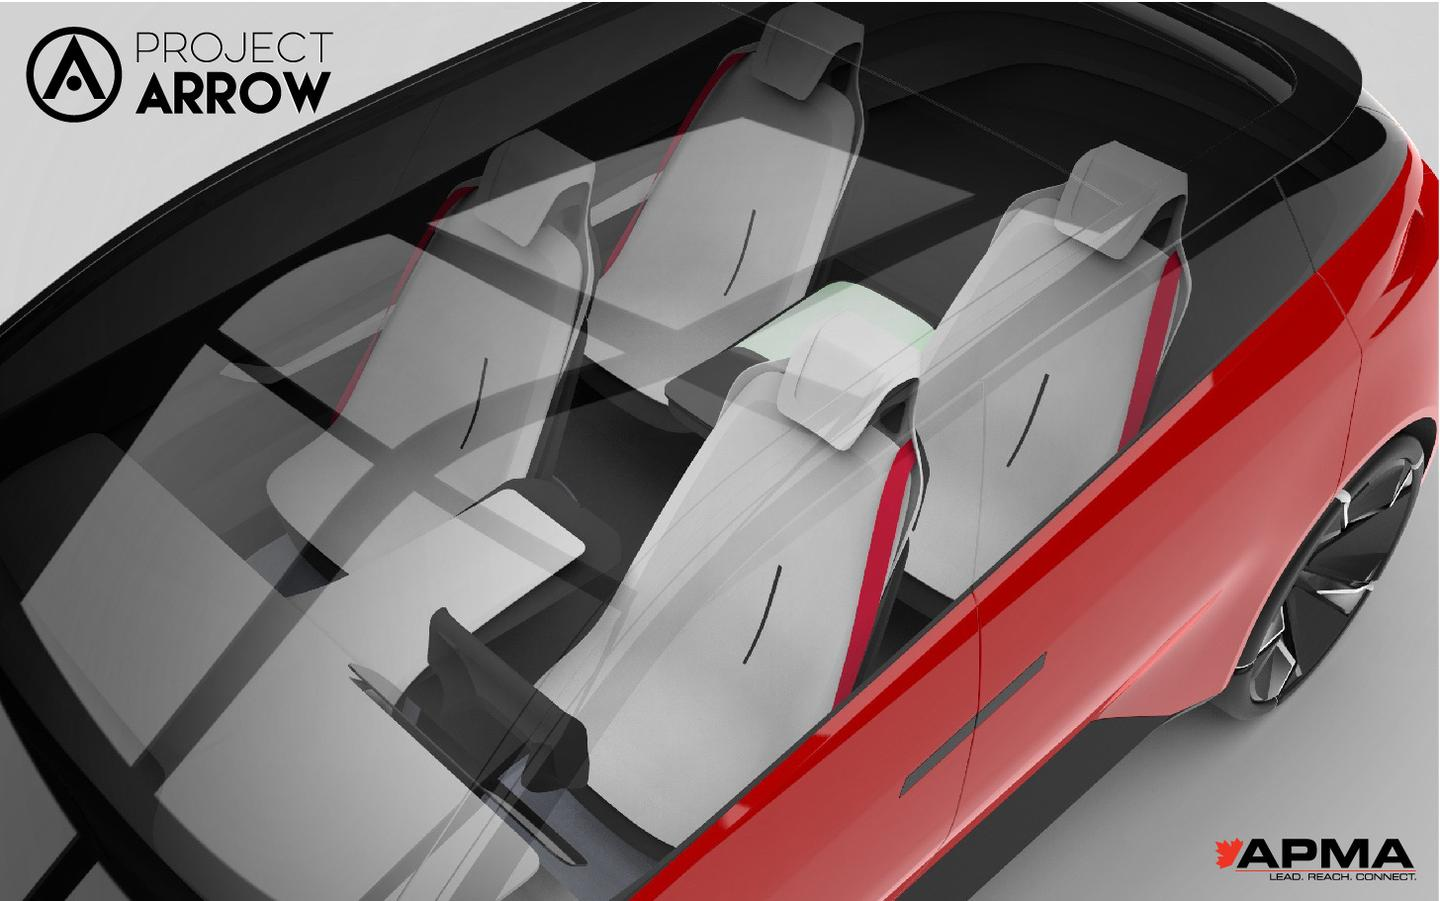 All going to plan, APMA hopes to tour and release the Project Arrow car in 2022